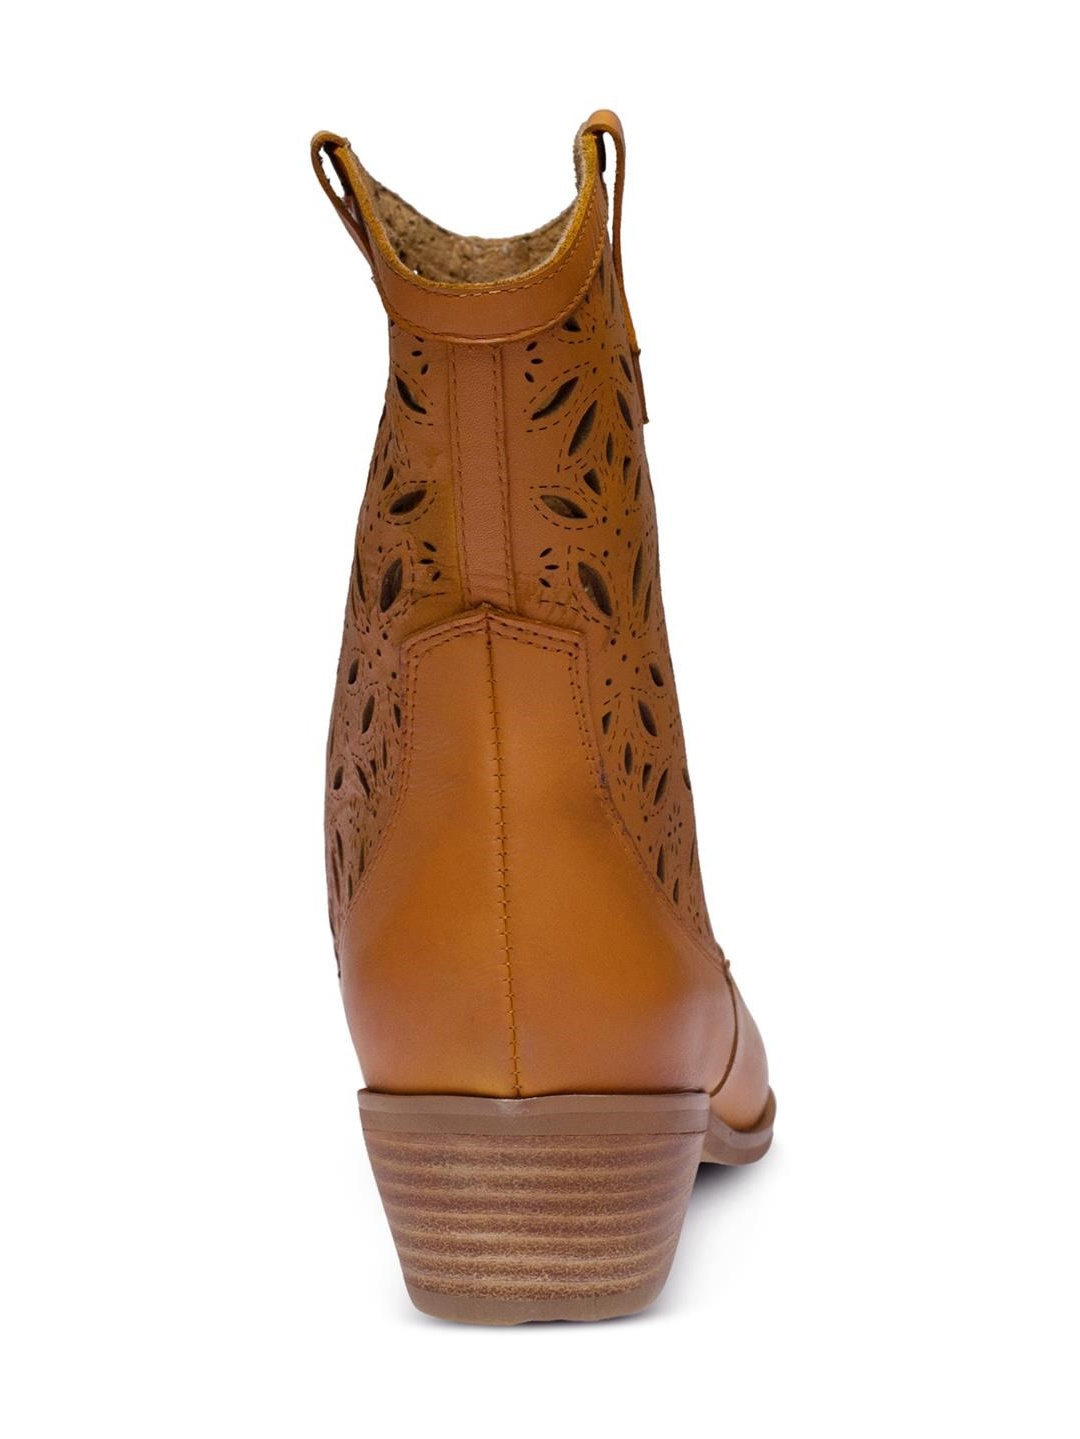 L'Artiste Elgin By Spring Step Natural Leather Boots 41 EU / 10 US Women